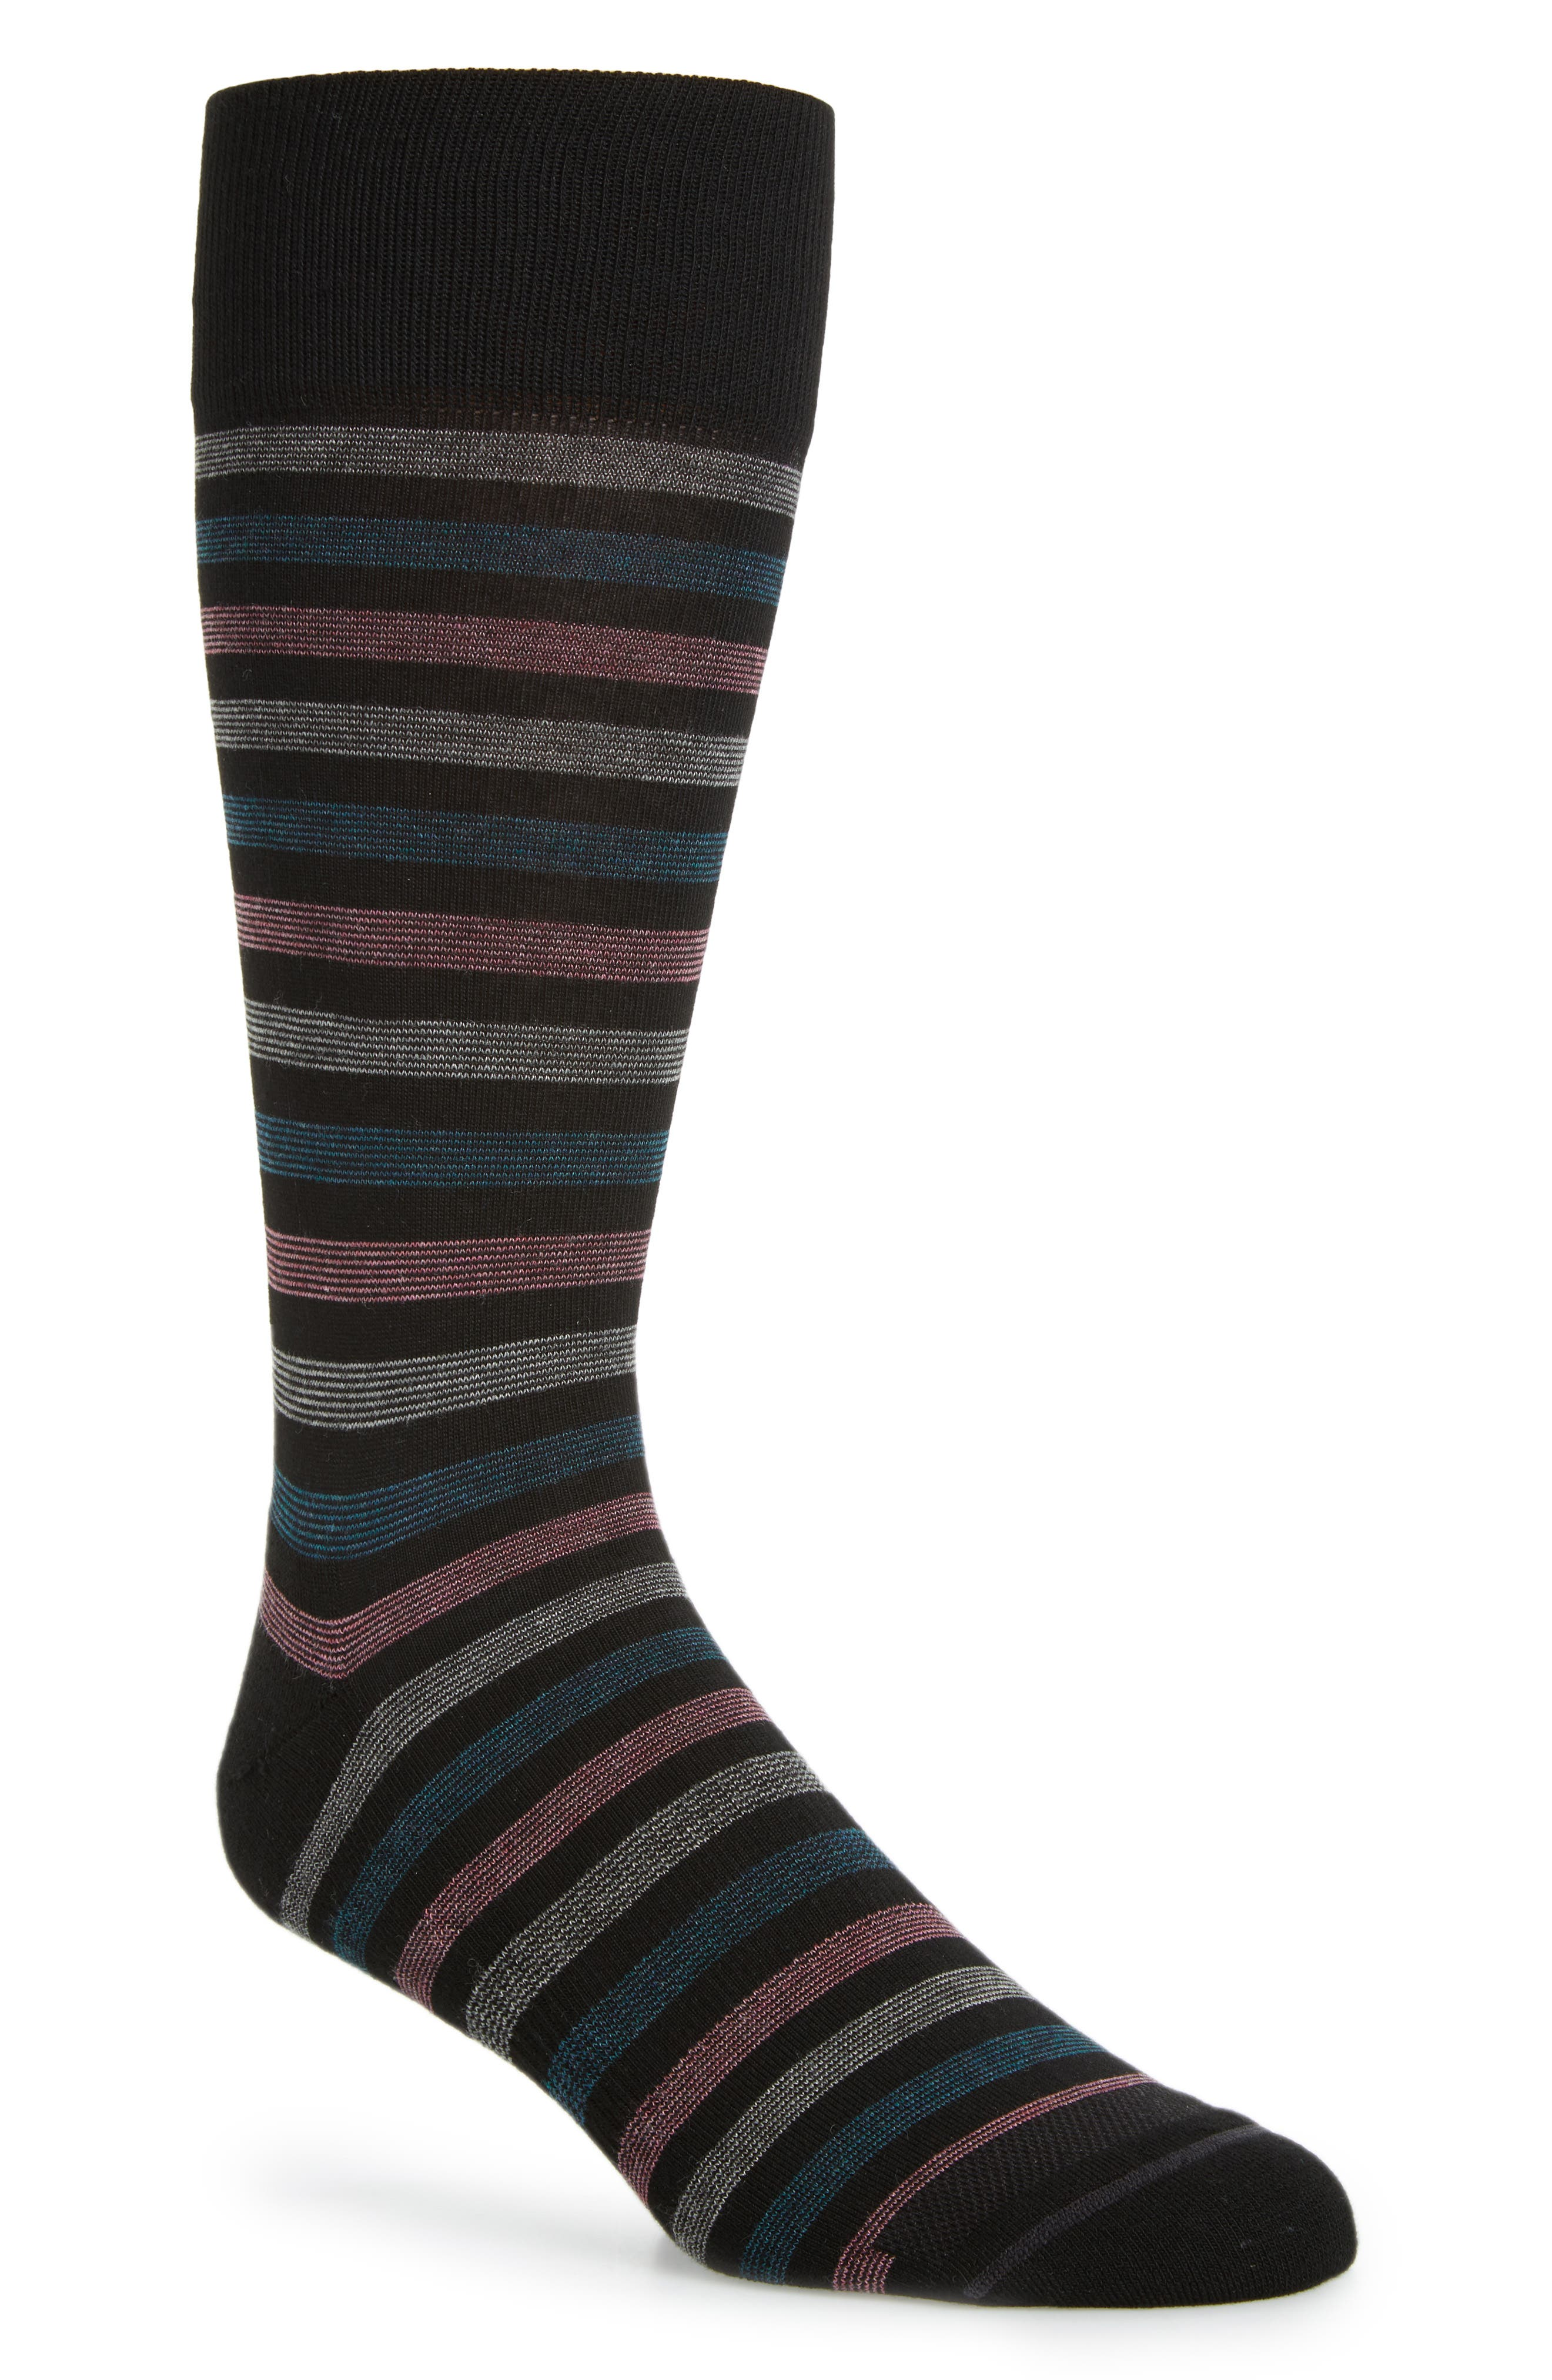 Alternate Image 1 Selected - Nordstrom Men's Shop Multistripe Socks